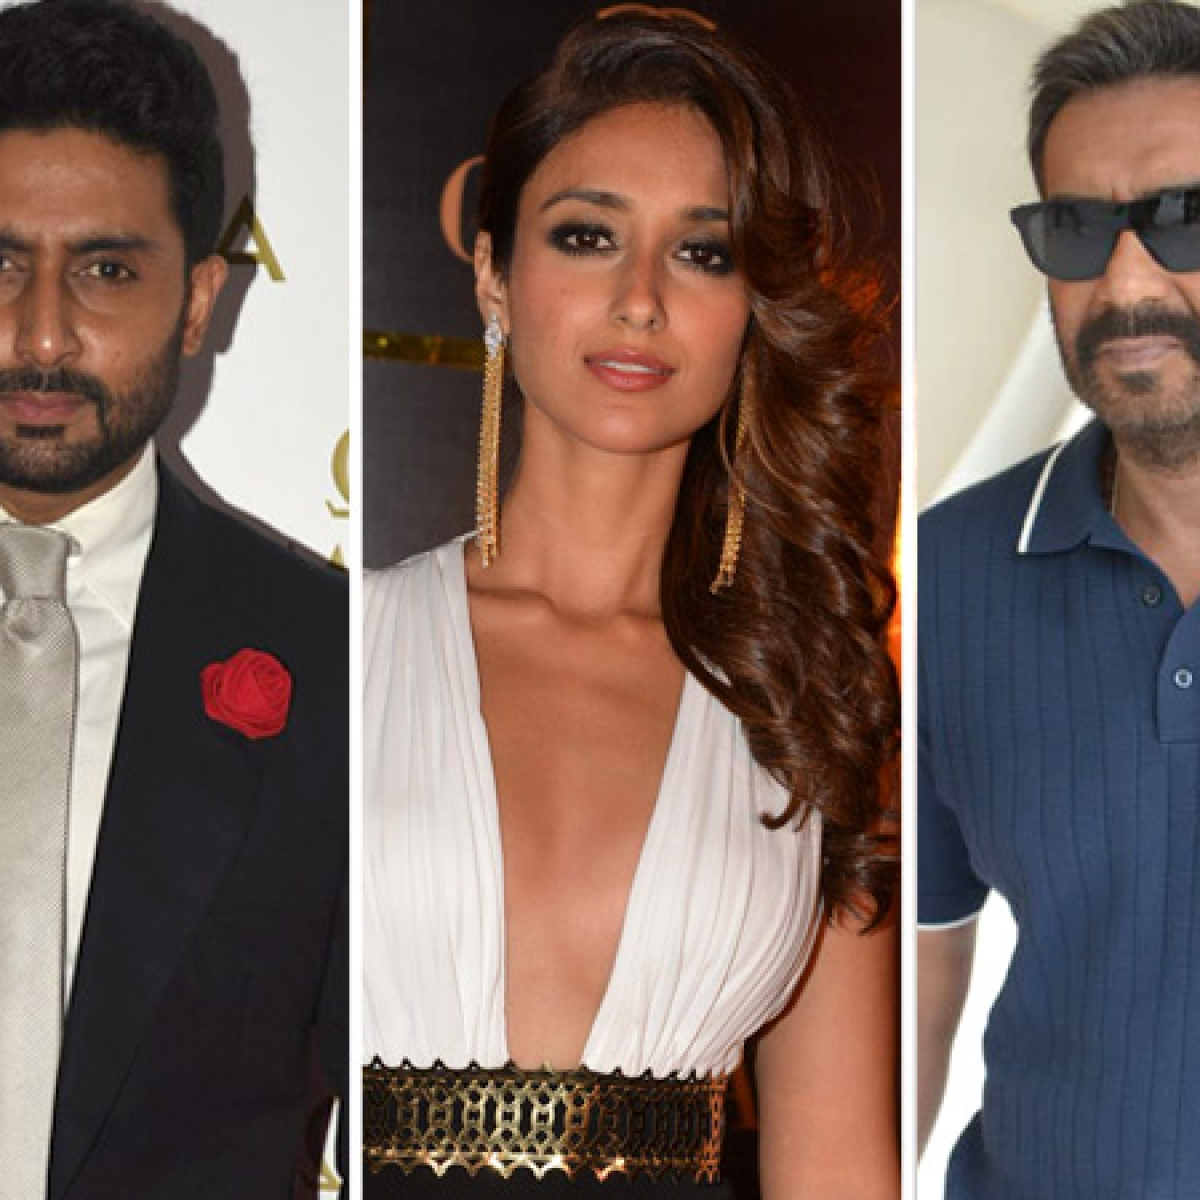 Abhishek Bachchan, Ileana D'Cruz to star in Ajay Devgn's production based on real incident